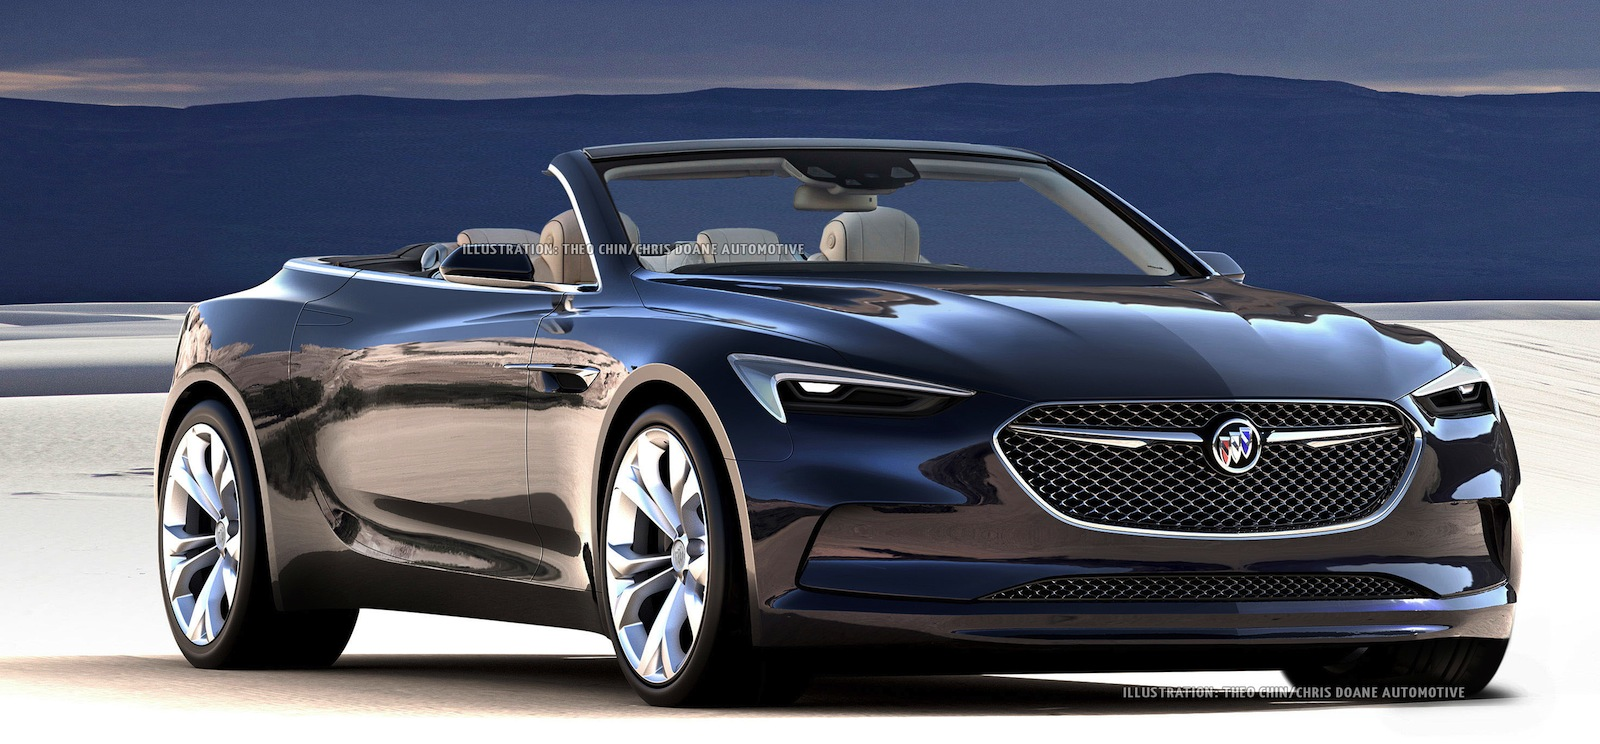 buick 39 s stunning new concept car looks even better as a convertible news. Black Bedroom Furniture Sets. Home Design Ideas